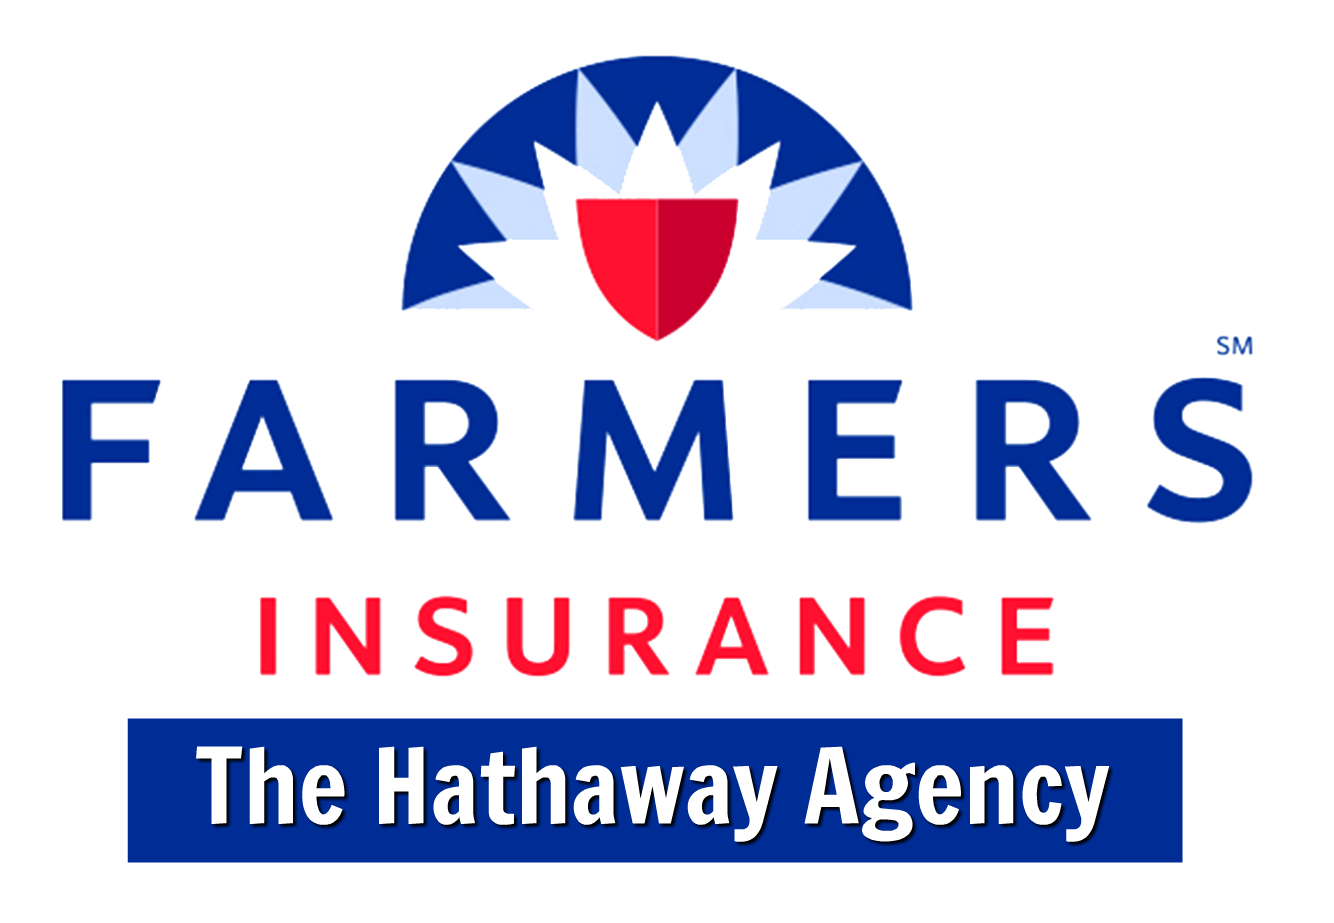 Farmers-Insurance-Hathaway-Agency-2017